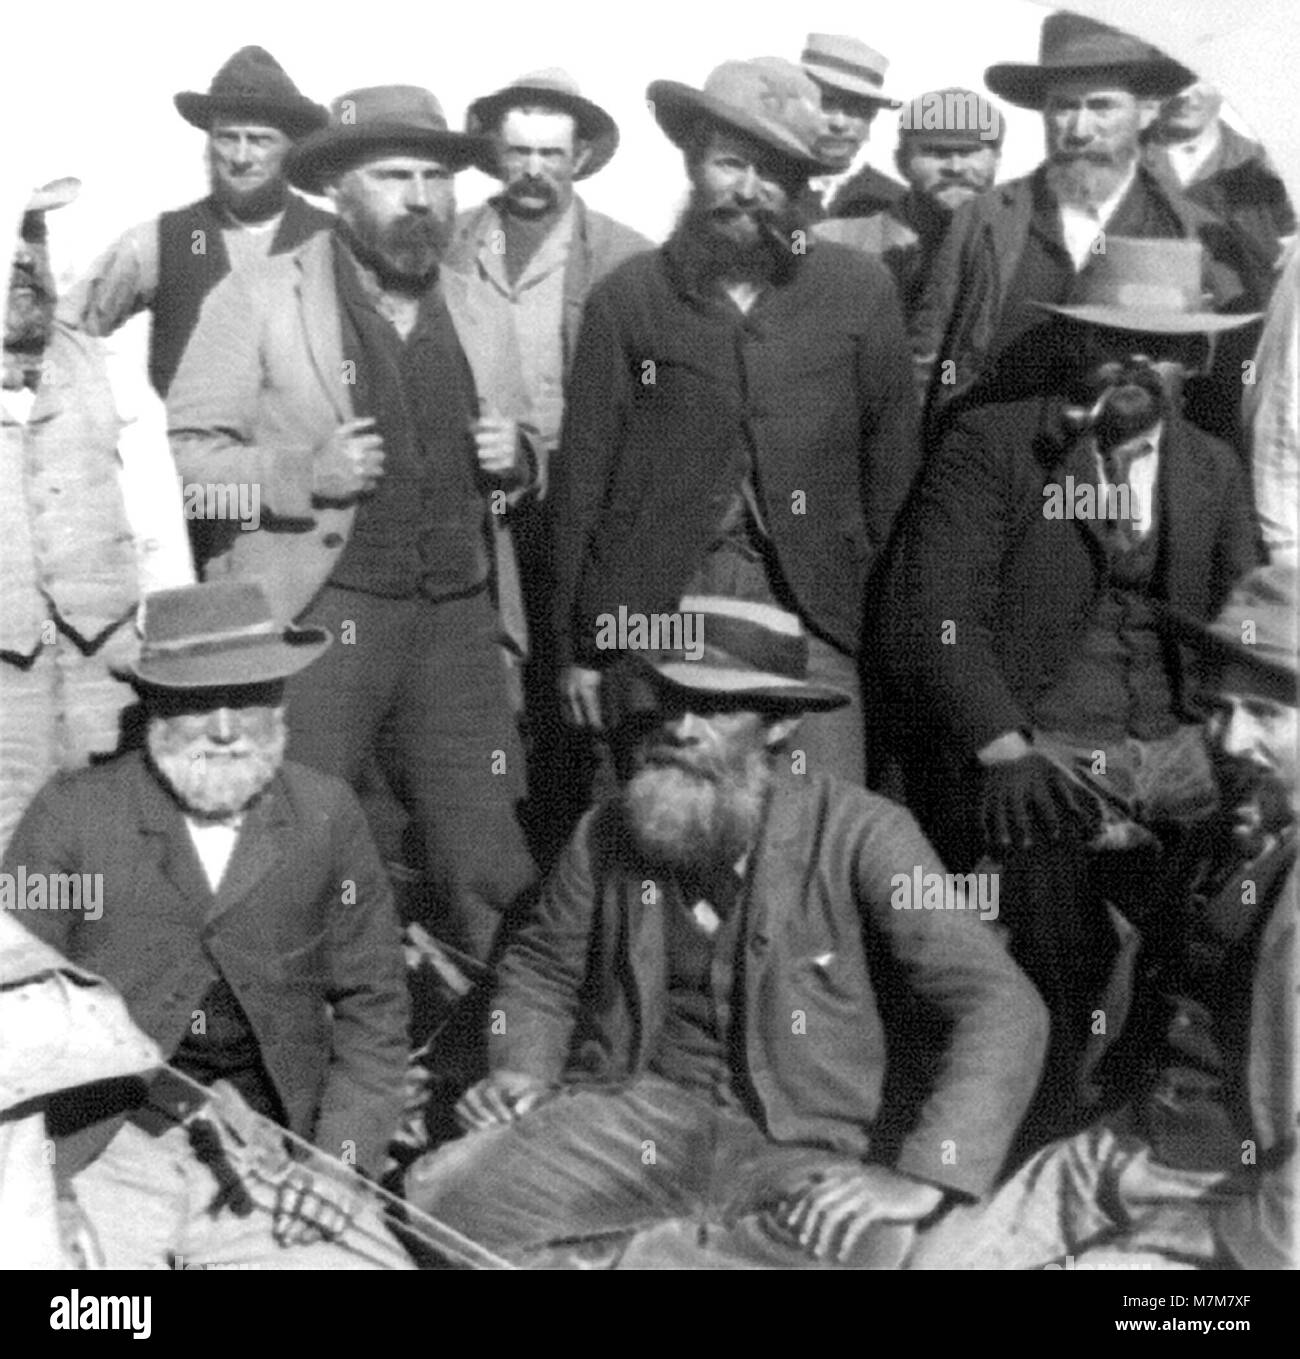 A group of Boer prisoners of war in Simonstown during the Second Boer War (1899-1902). Photo c.1901 - Stock Image